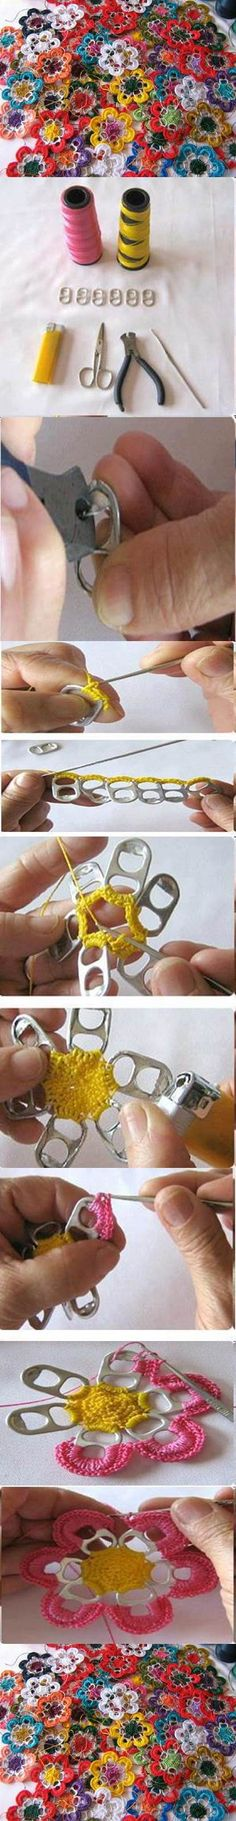 DIY Pull Tabs Crochet Flowers flowers diy crafts home made easy crafts craft idea crafts ideas diy ideas diy crafts diy idea do it yourself diy projects diy craft handmade Crochet Motif, Crochet Yarn, Crochet Flowers, Crochet Patterns, Sweater Patterns, Diy Home Crafts, Easy Crafts, Sewing Crafts, Soda Tab Crafts